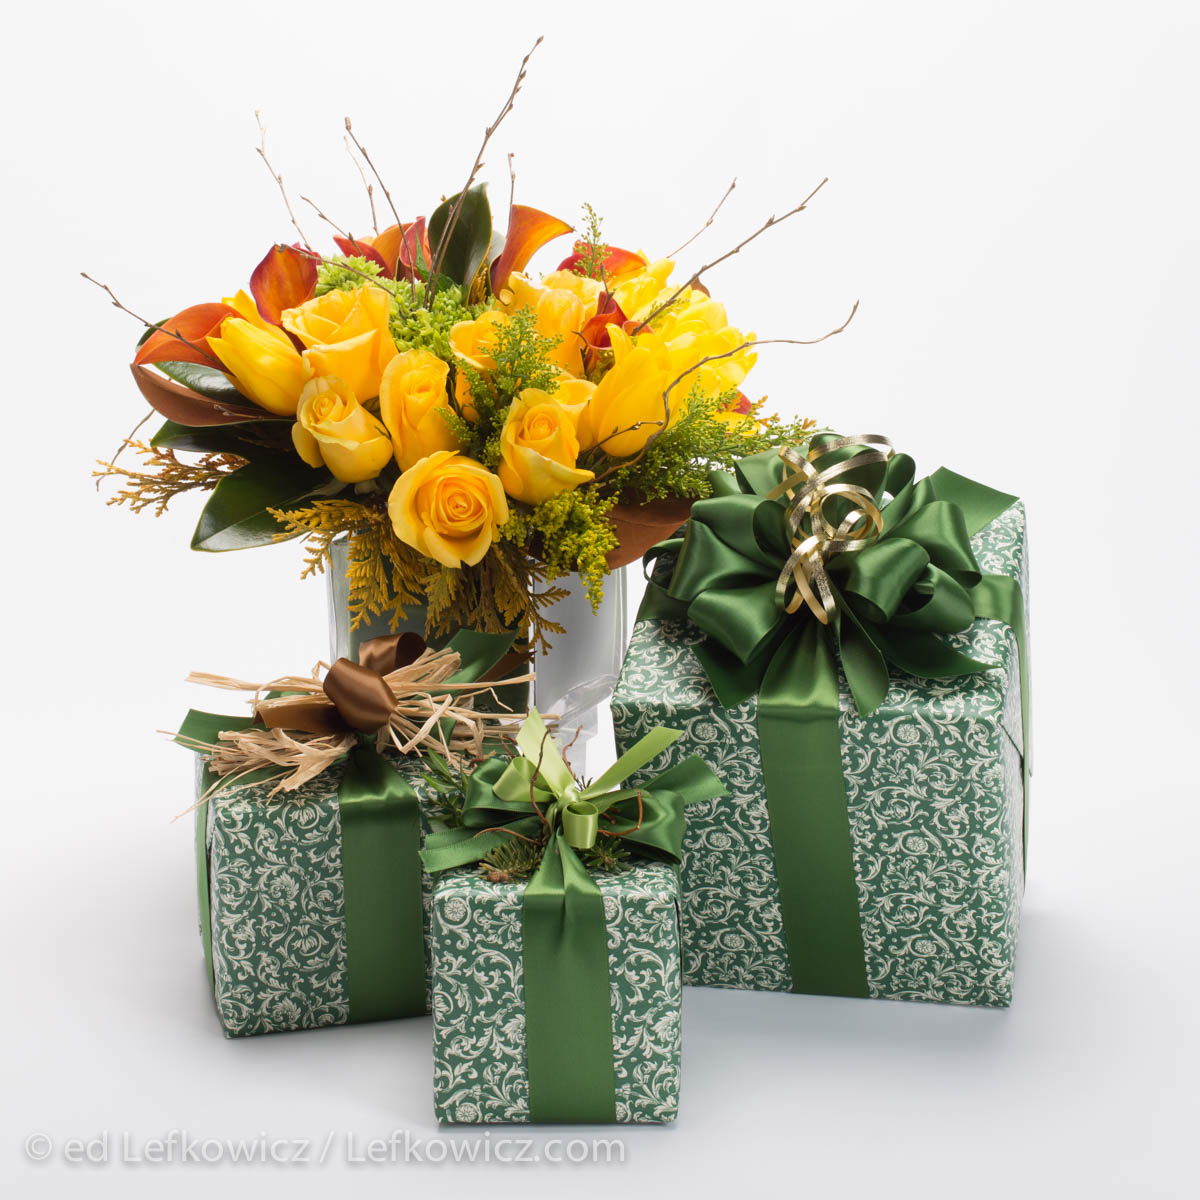 Floral arrangement and gift boxes